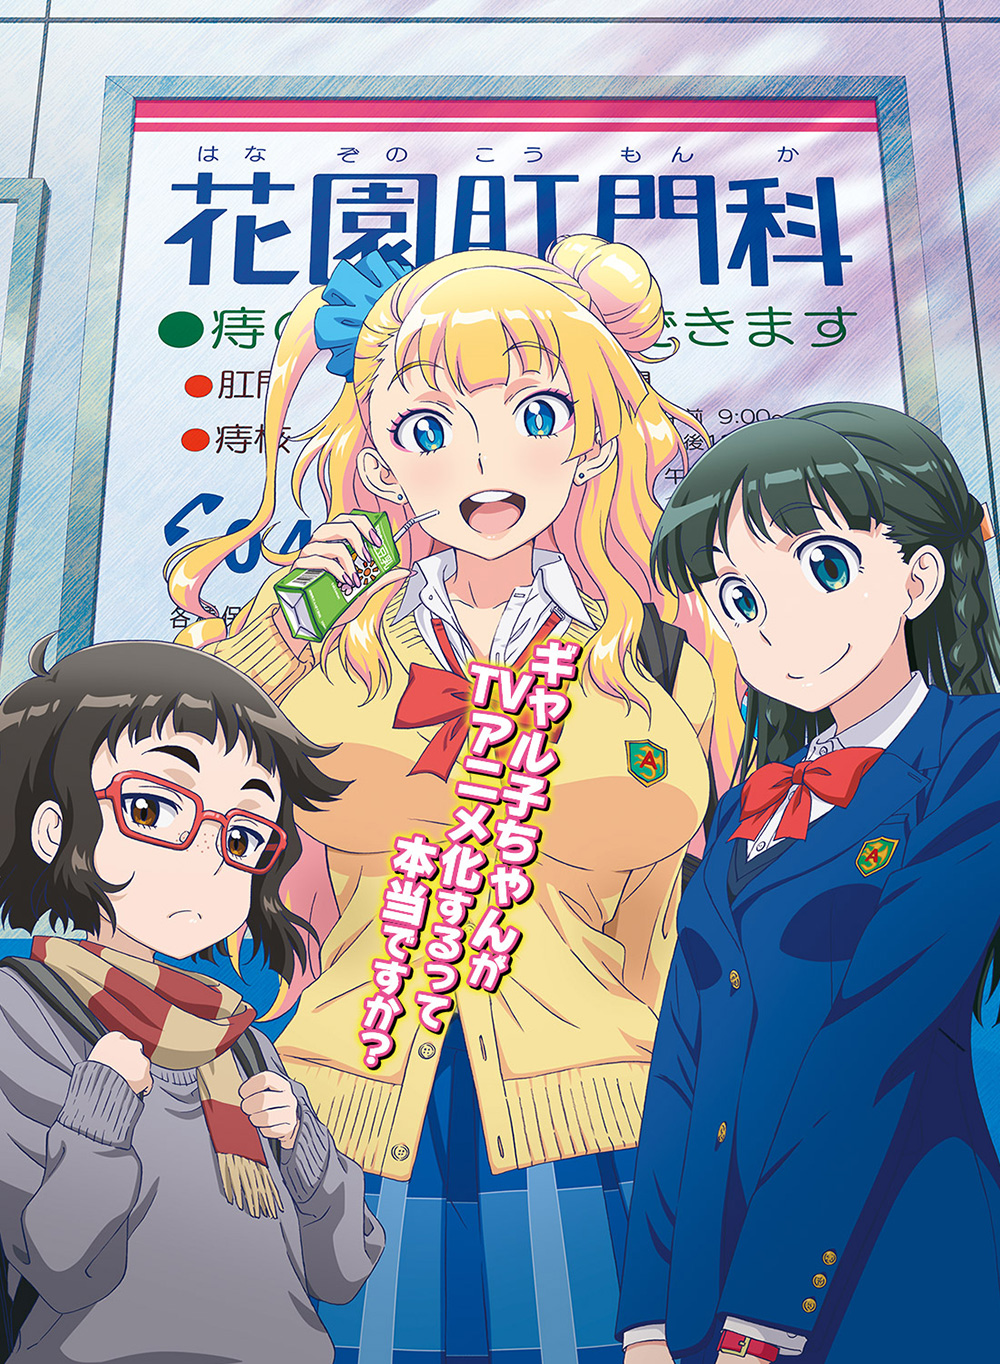 Oshiete!-Galko-chan-Anime-Visual